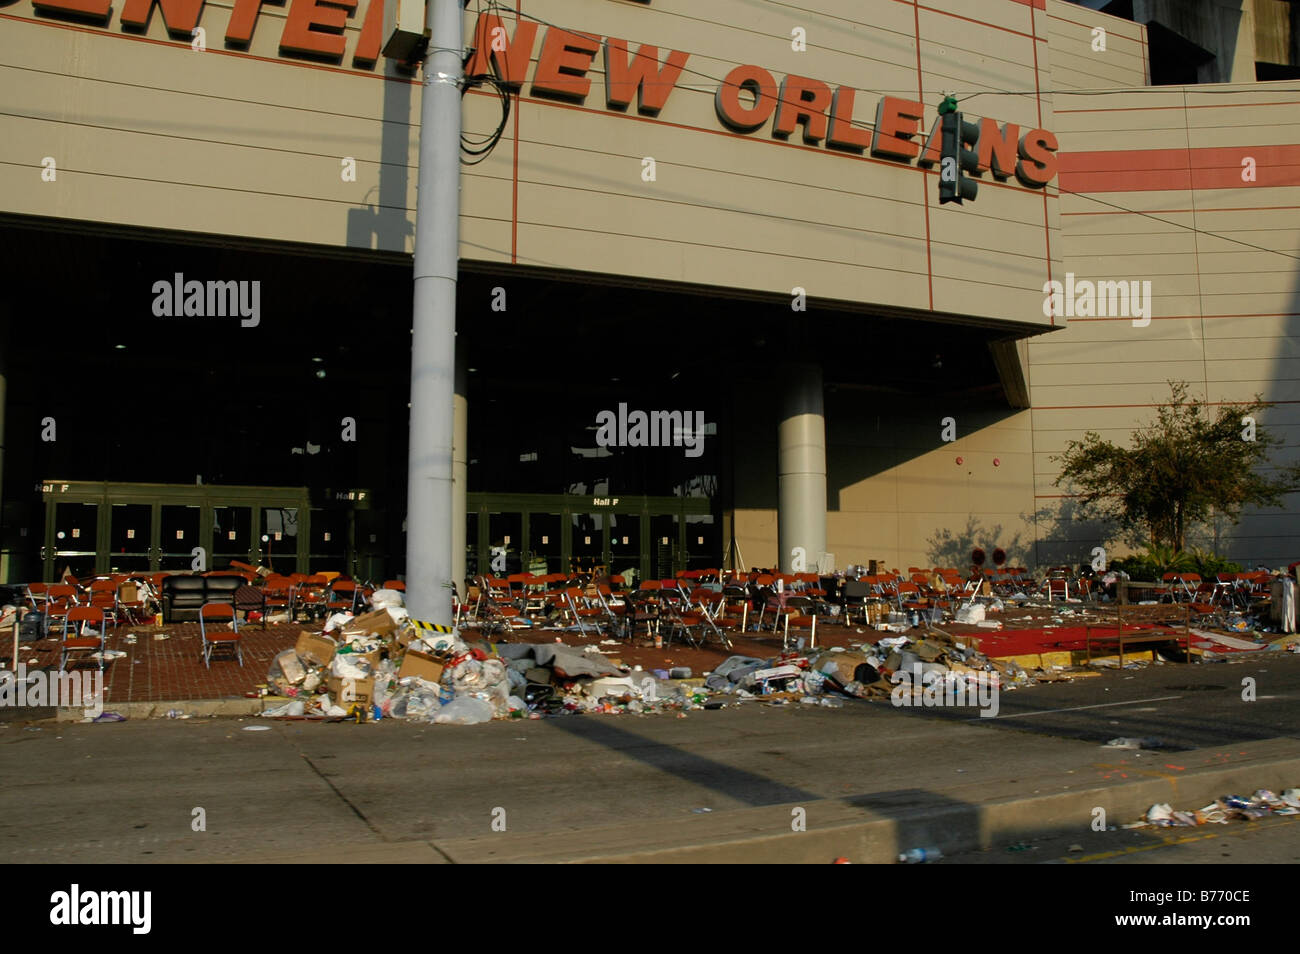 new orleans conference centre abandoned with chairs and remains of human occupation after Hurricane Katrina - Stock Image